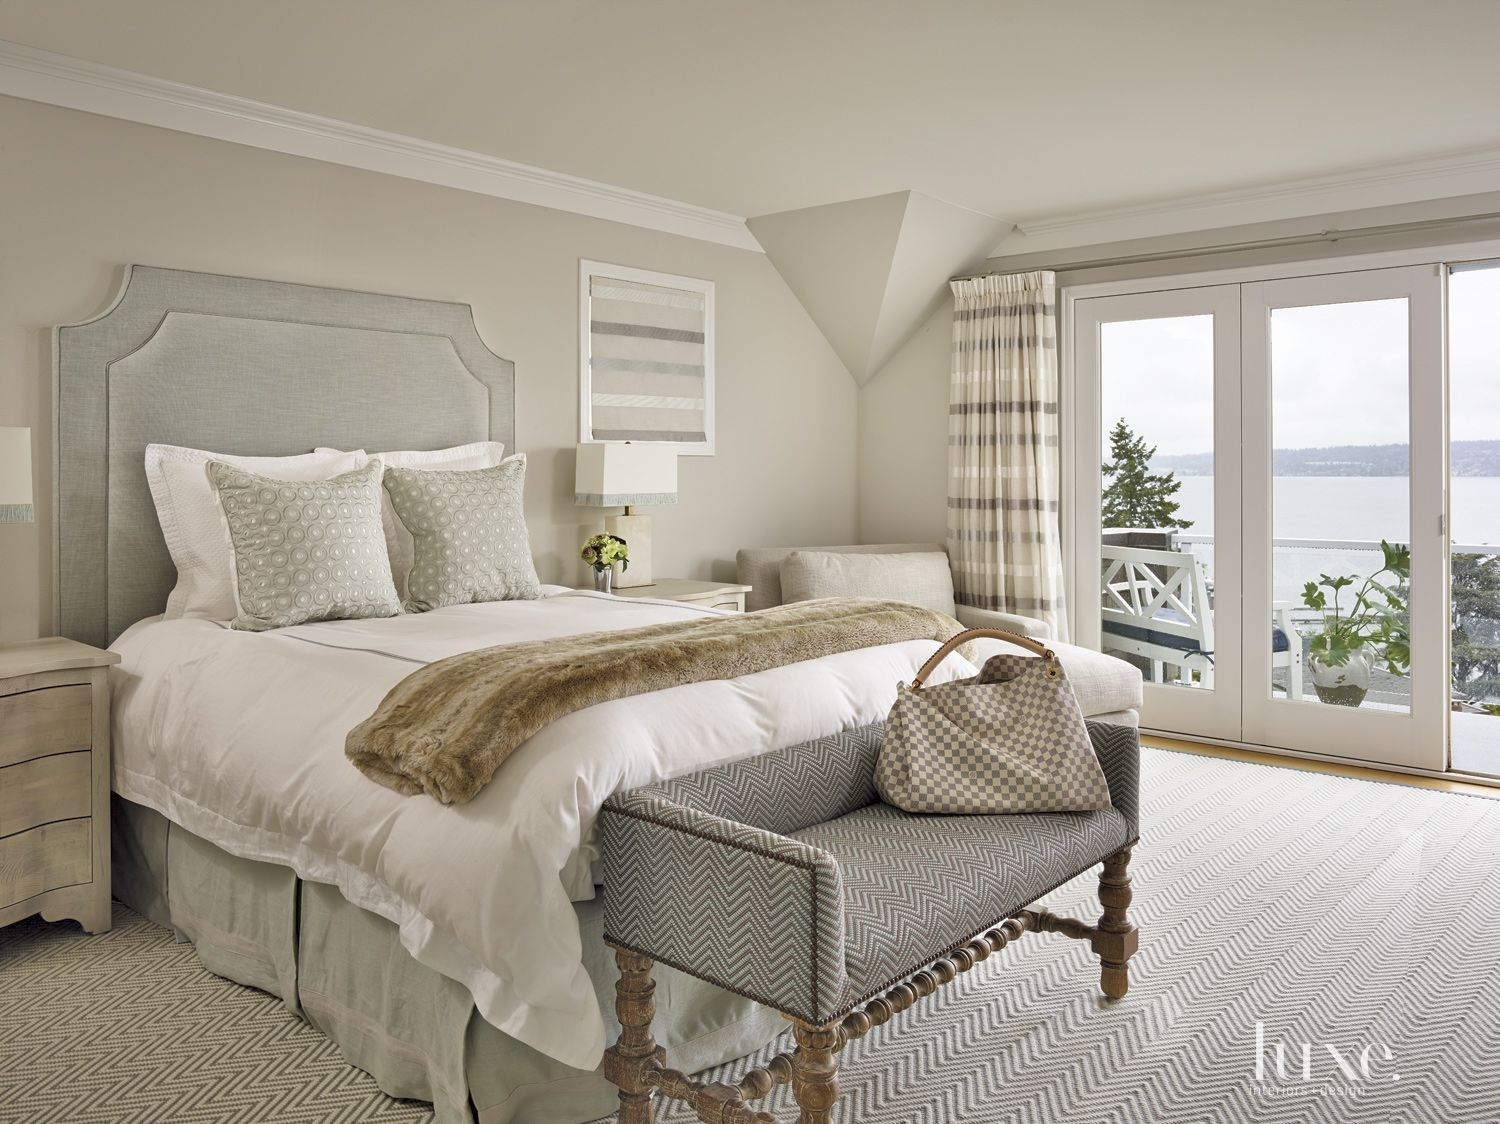 Contemporary Gray Bedroom with Fur Throw Blanket